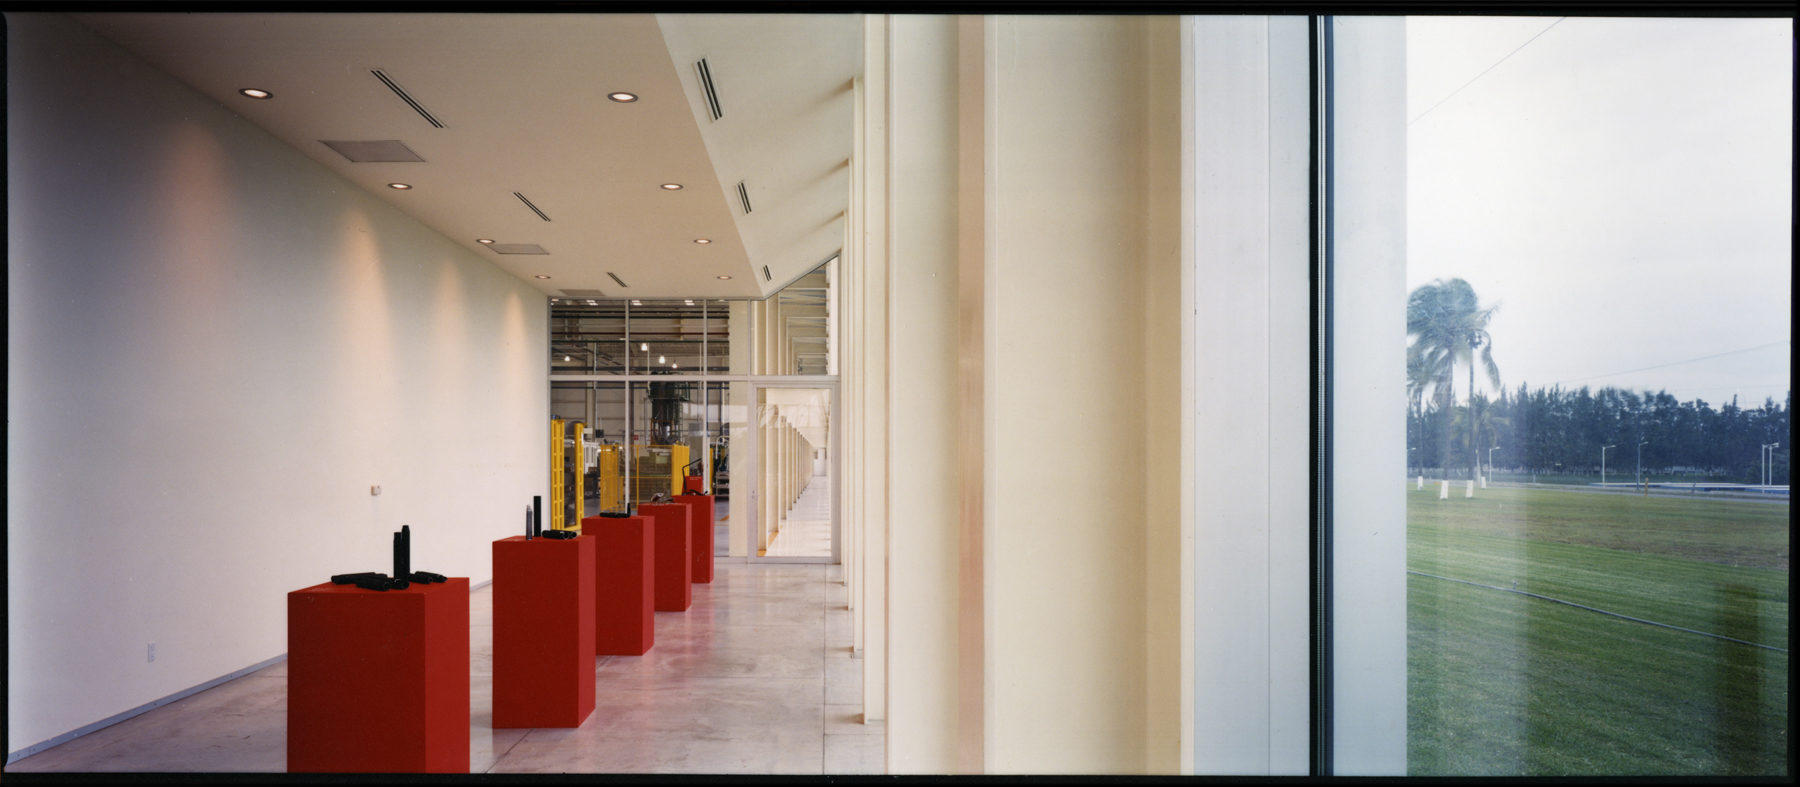 Products Exhibition at the automative Components Plant Entrance Hall, Veracruz, Mexico